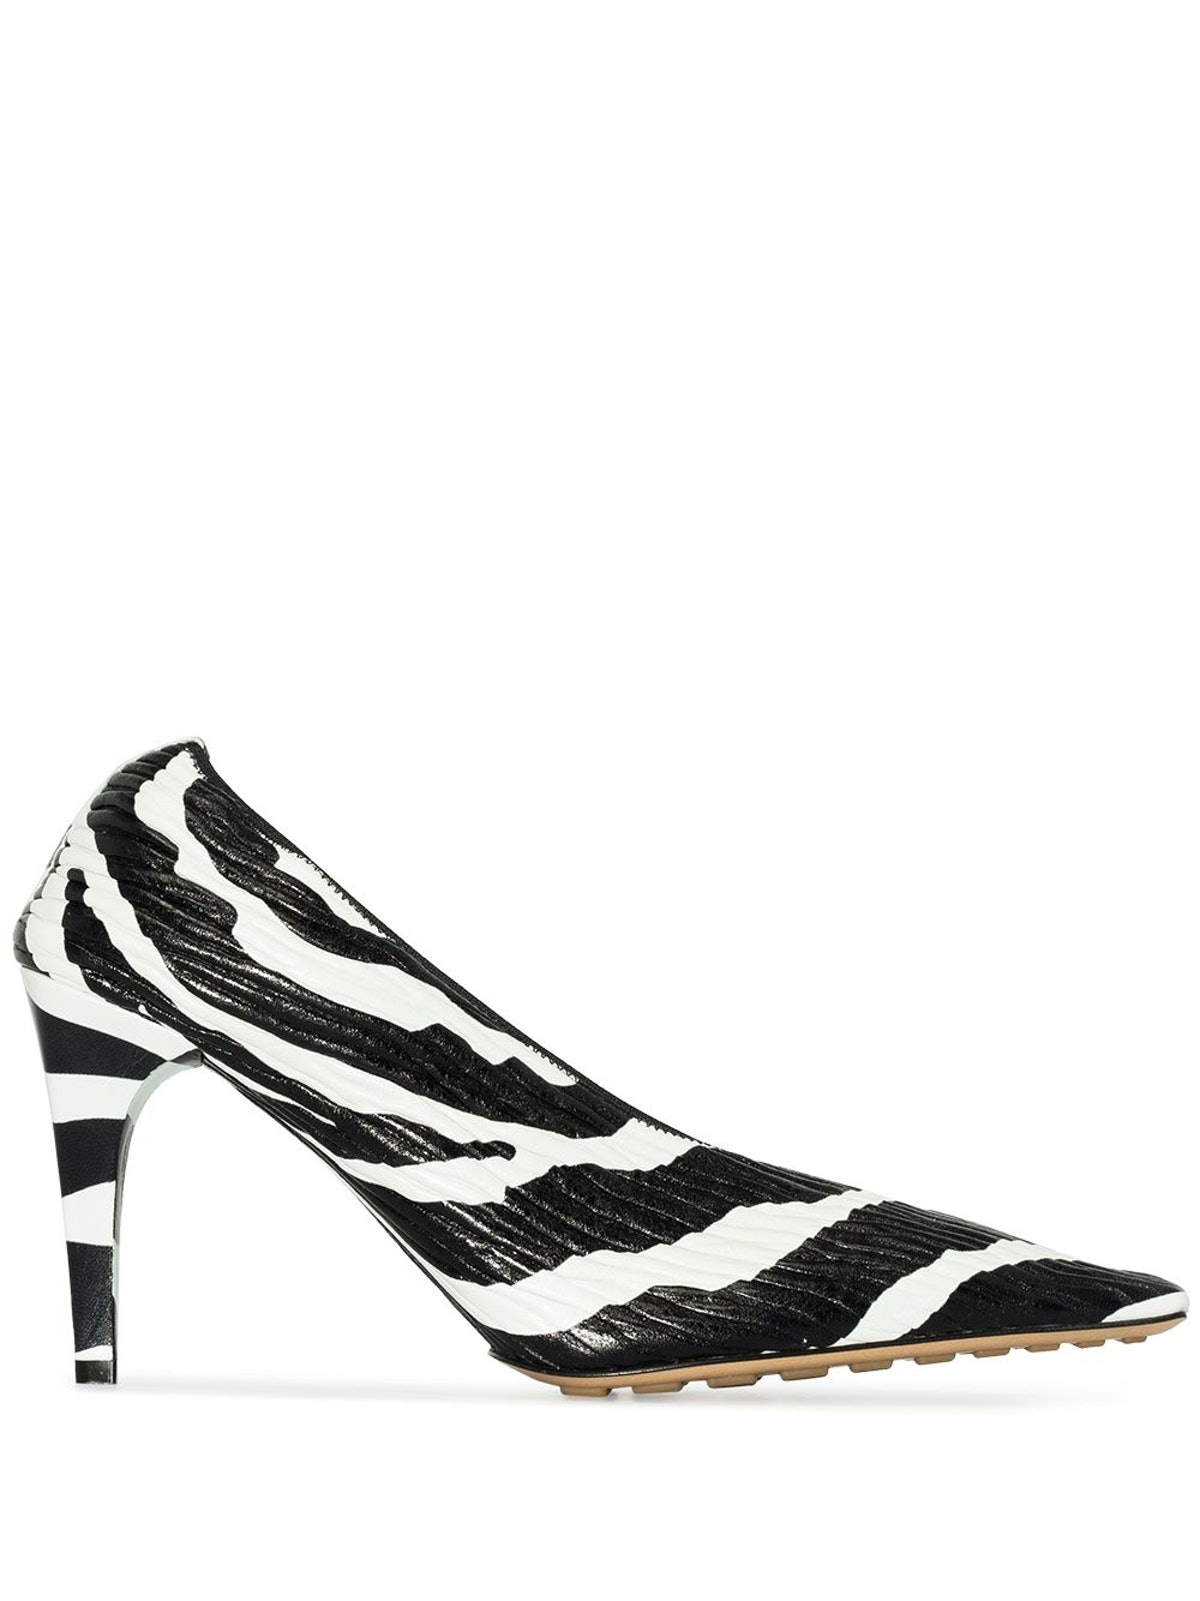 90mm Two-Tone Leather Pumps